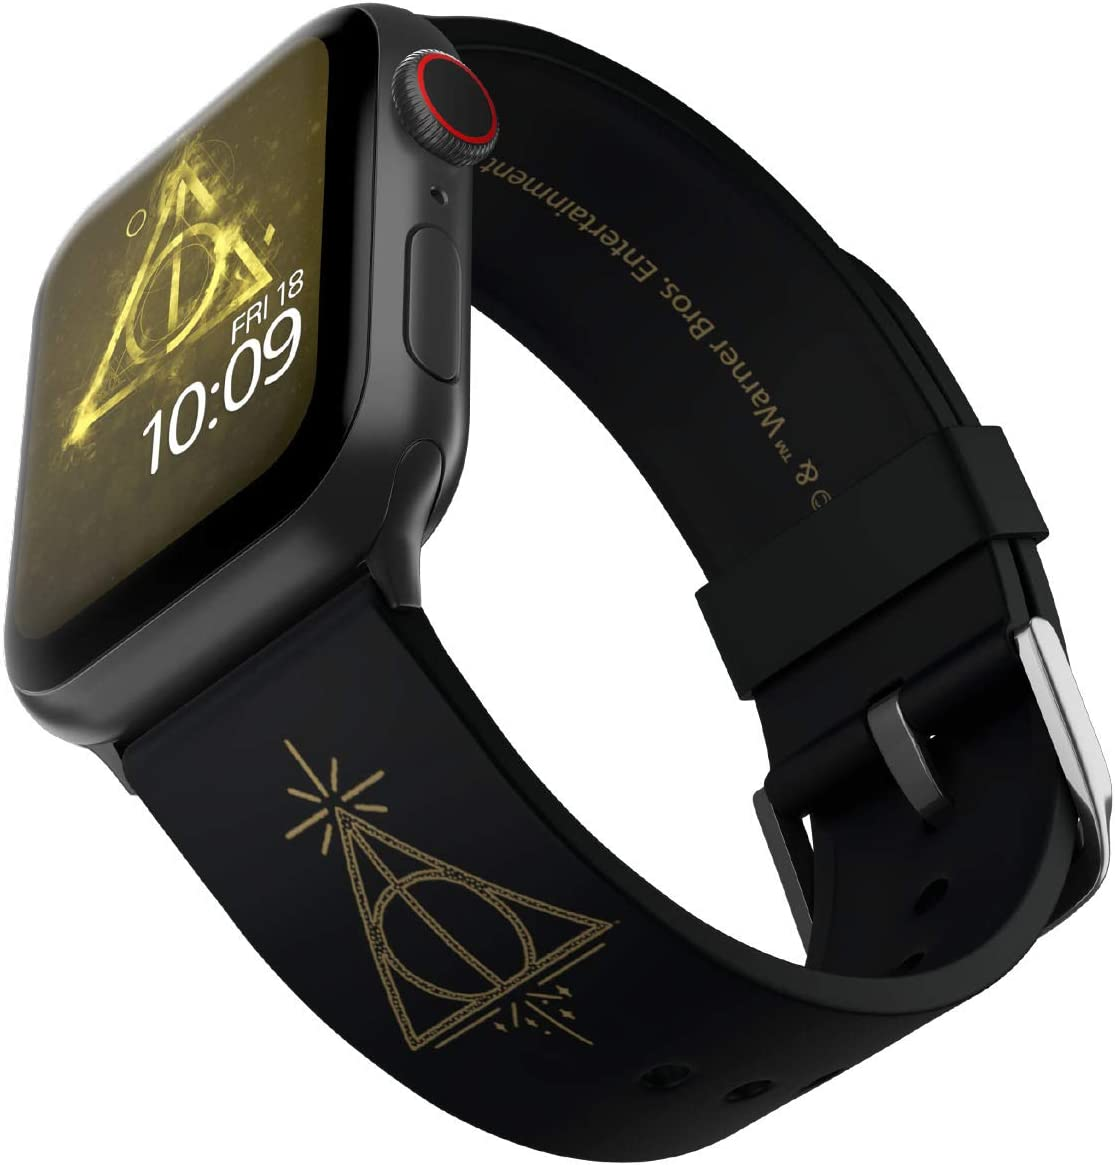 Harry Potter - Deathly Hallows Edition – Officially Licensed Silicone Smartwatch Band Compatible with Apple Watch, Fits 38mm, 40mm, 42mm and 44mm